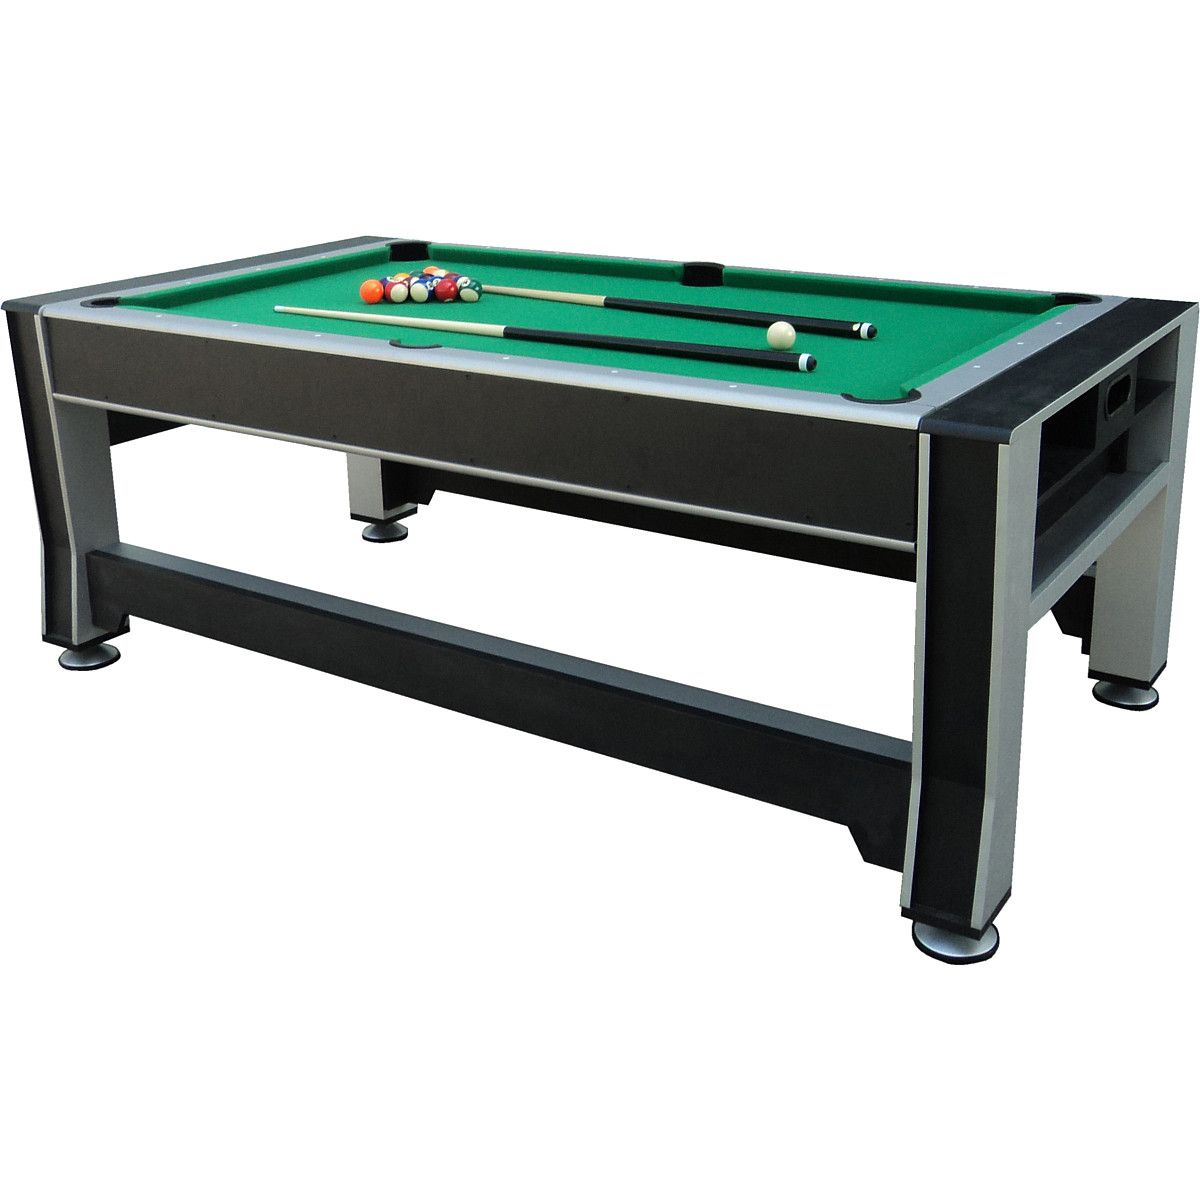 Triumph Sports In Rotating Table Air Powered Hockey - Sports authority pool table